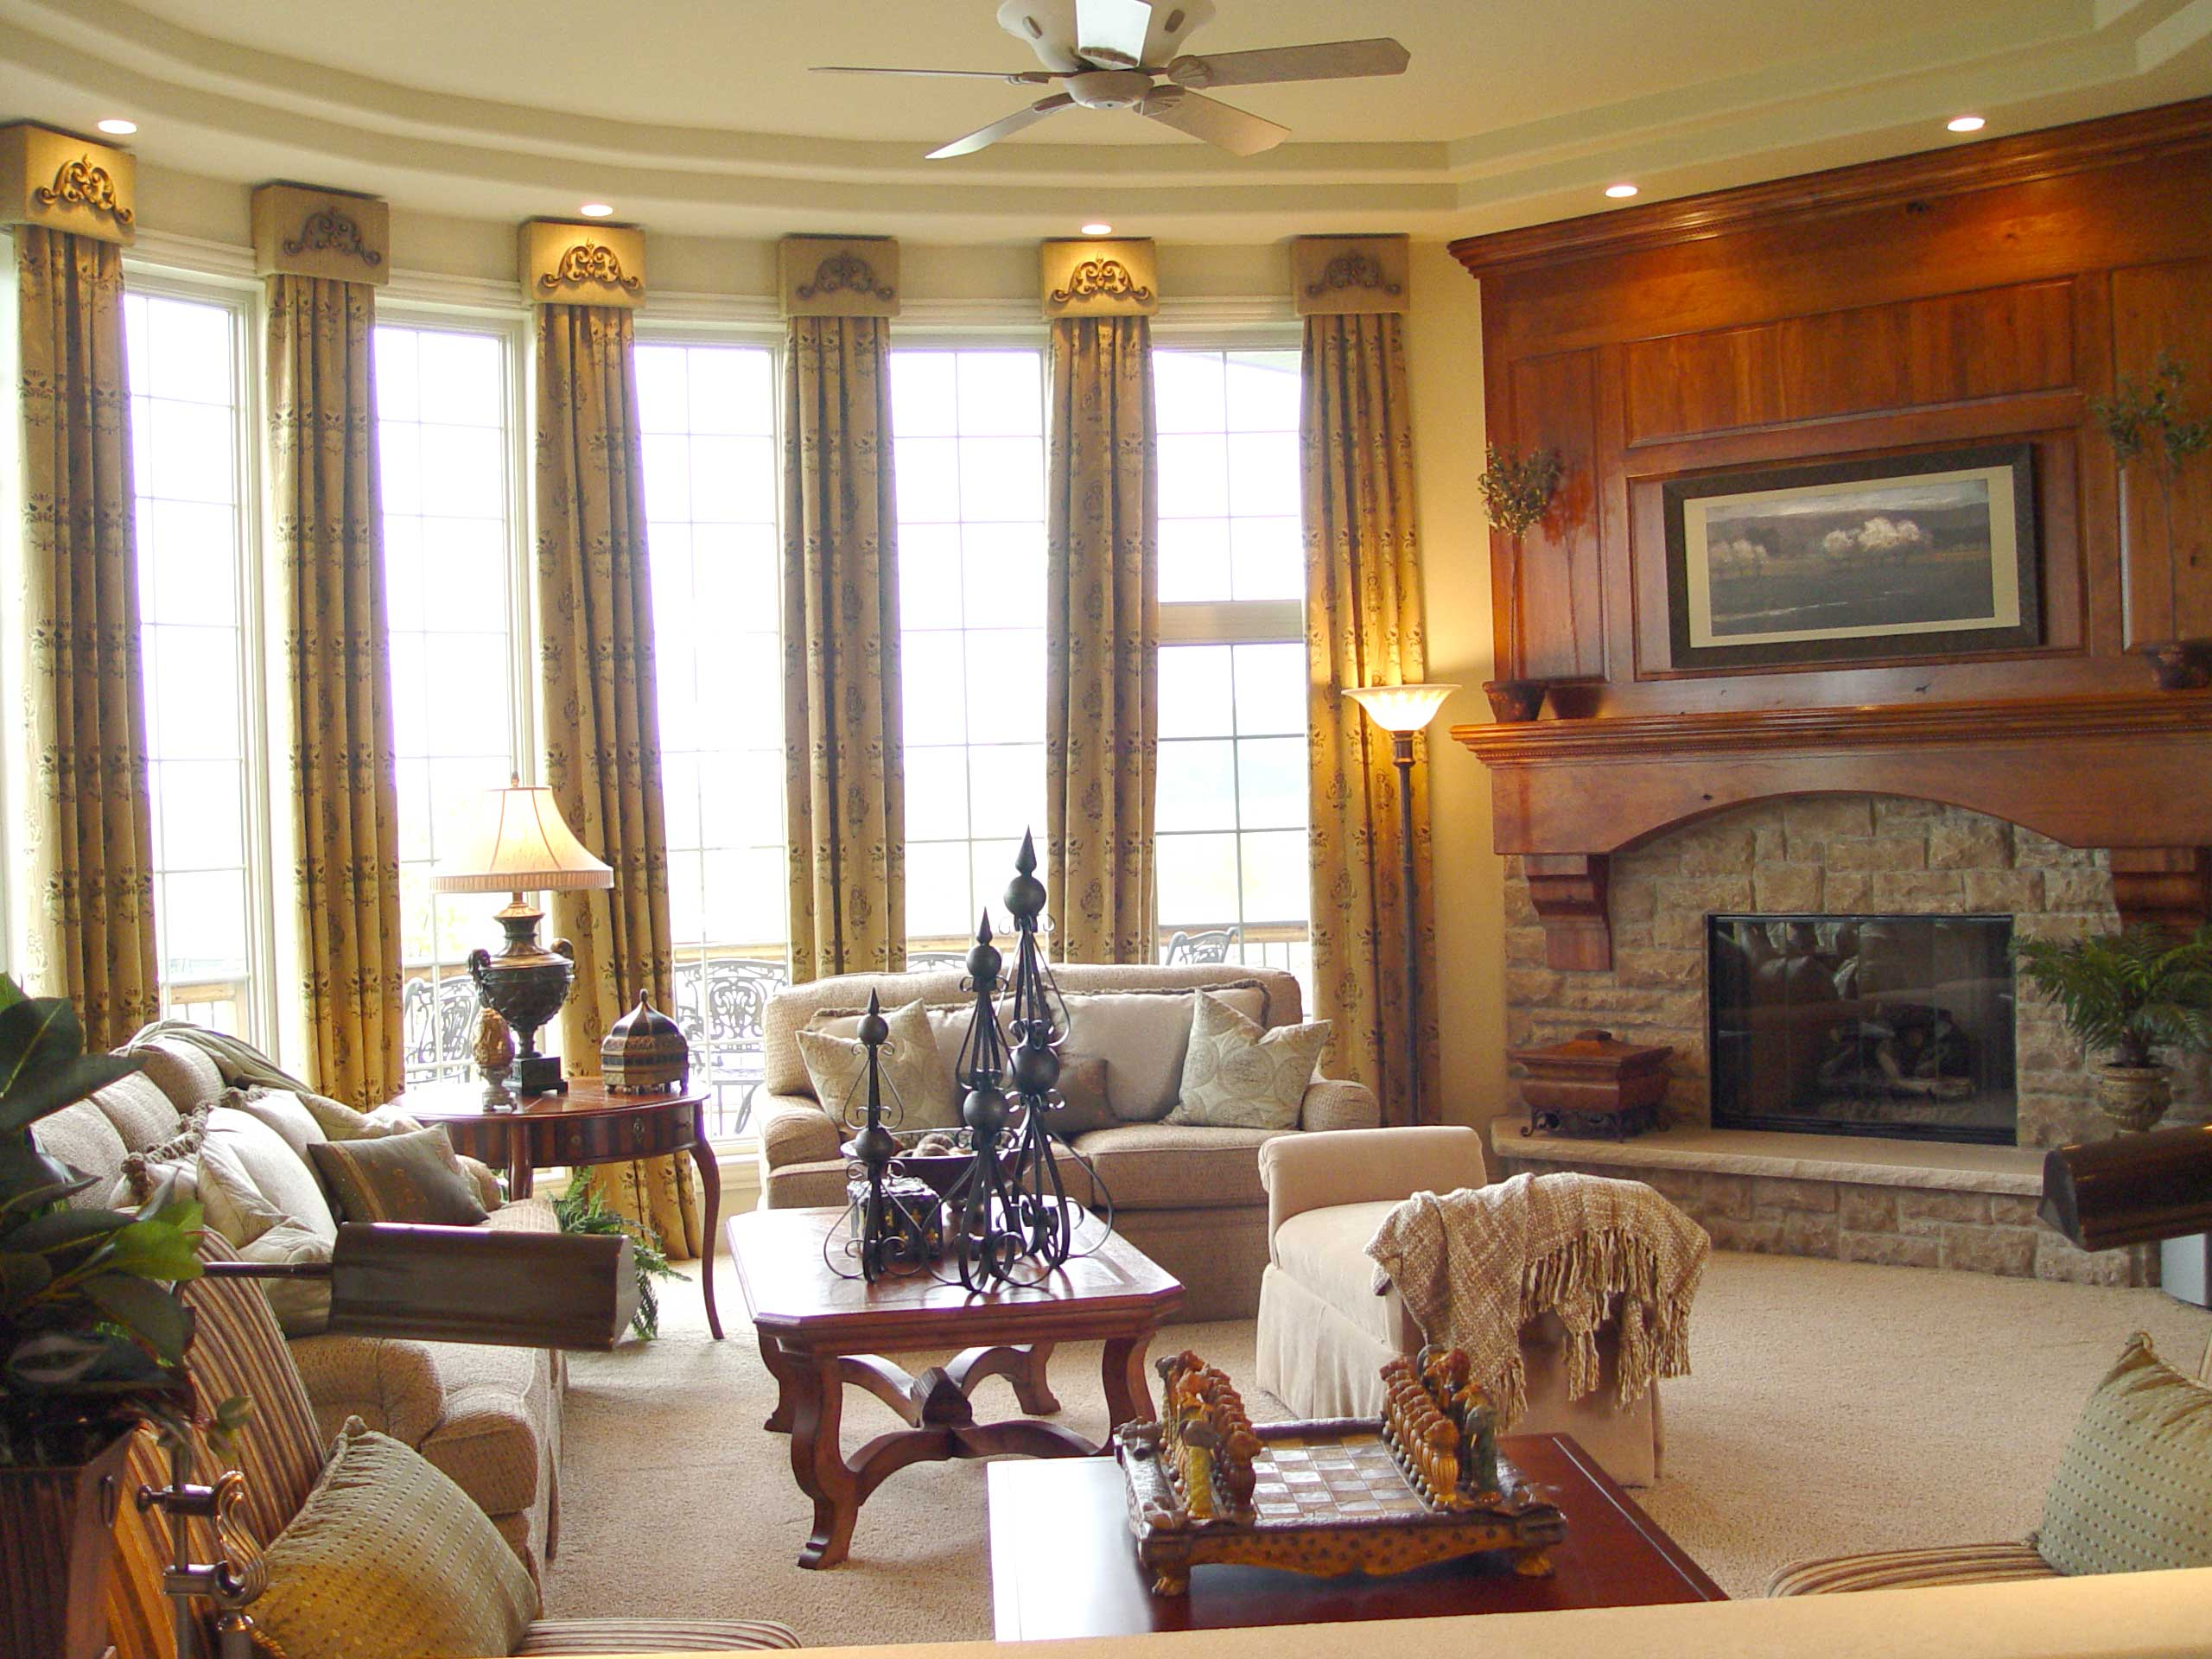 In november we added plantation shutters and i furnished with a sofa - Window Treatments Why Do We Need Them Window Treatments Pegasus Design Group Interior Design Pegasus Design Group Llc